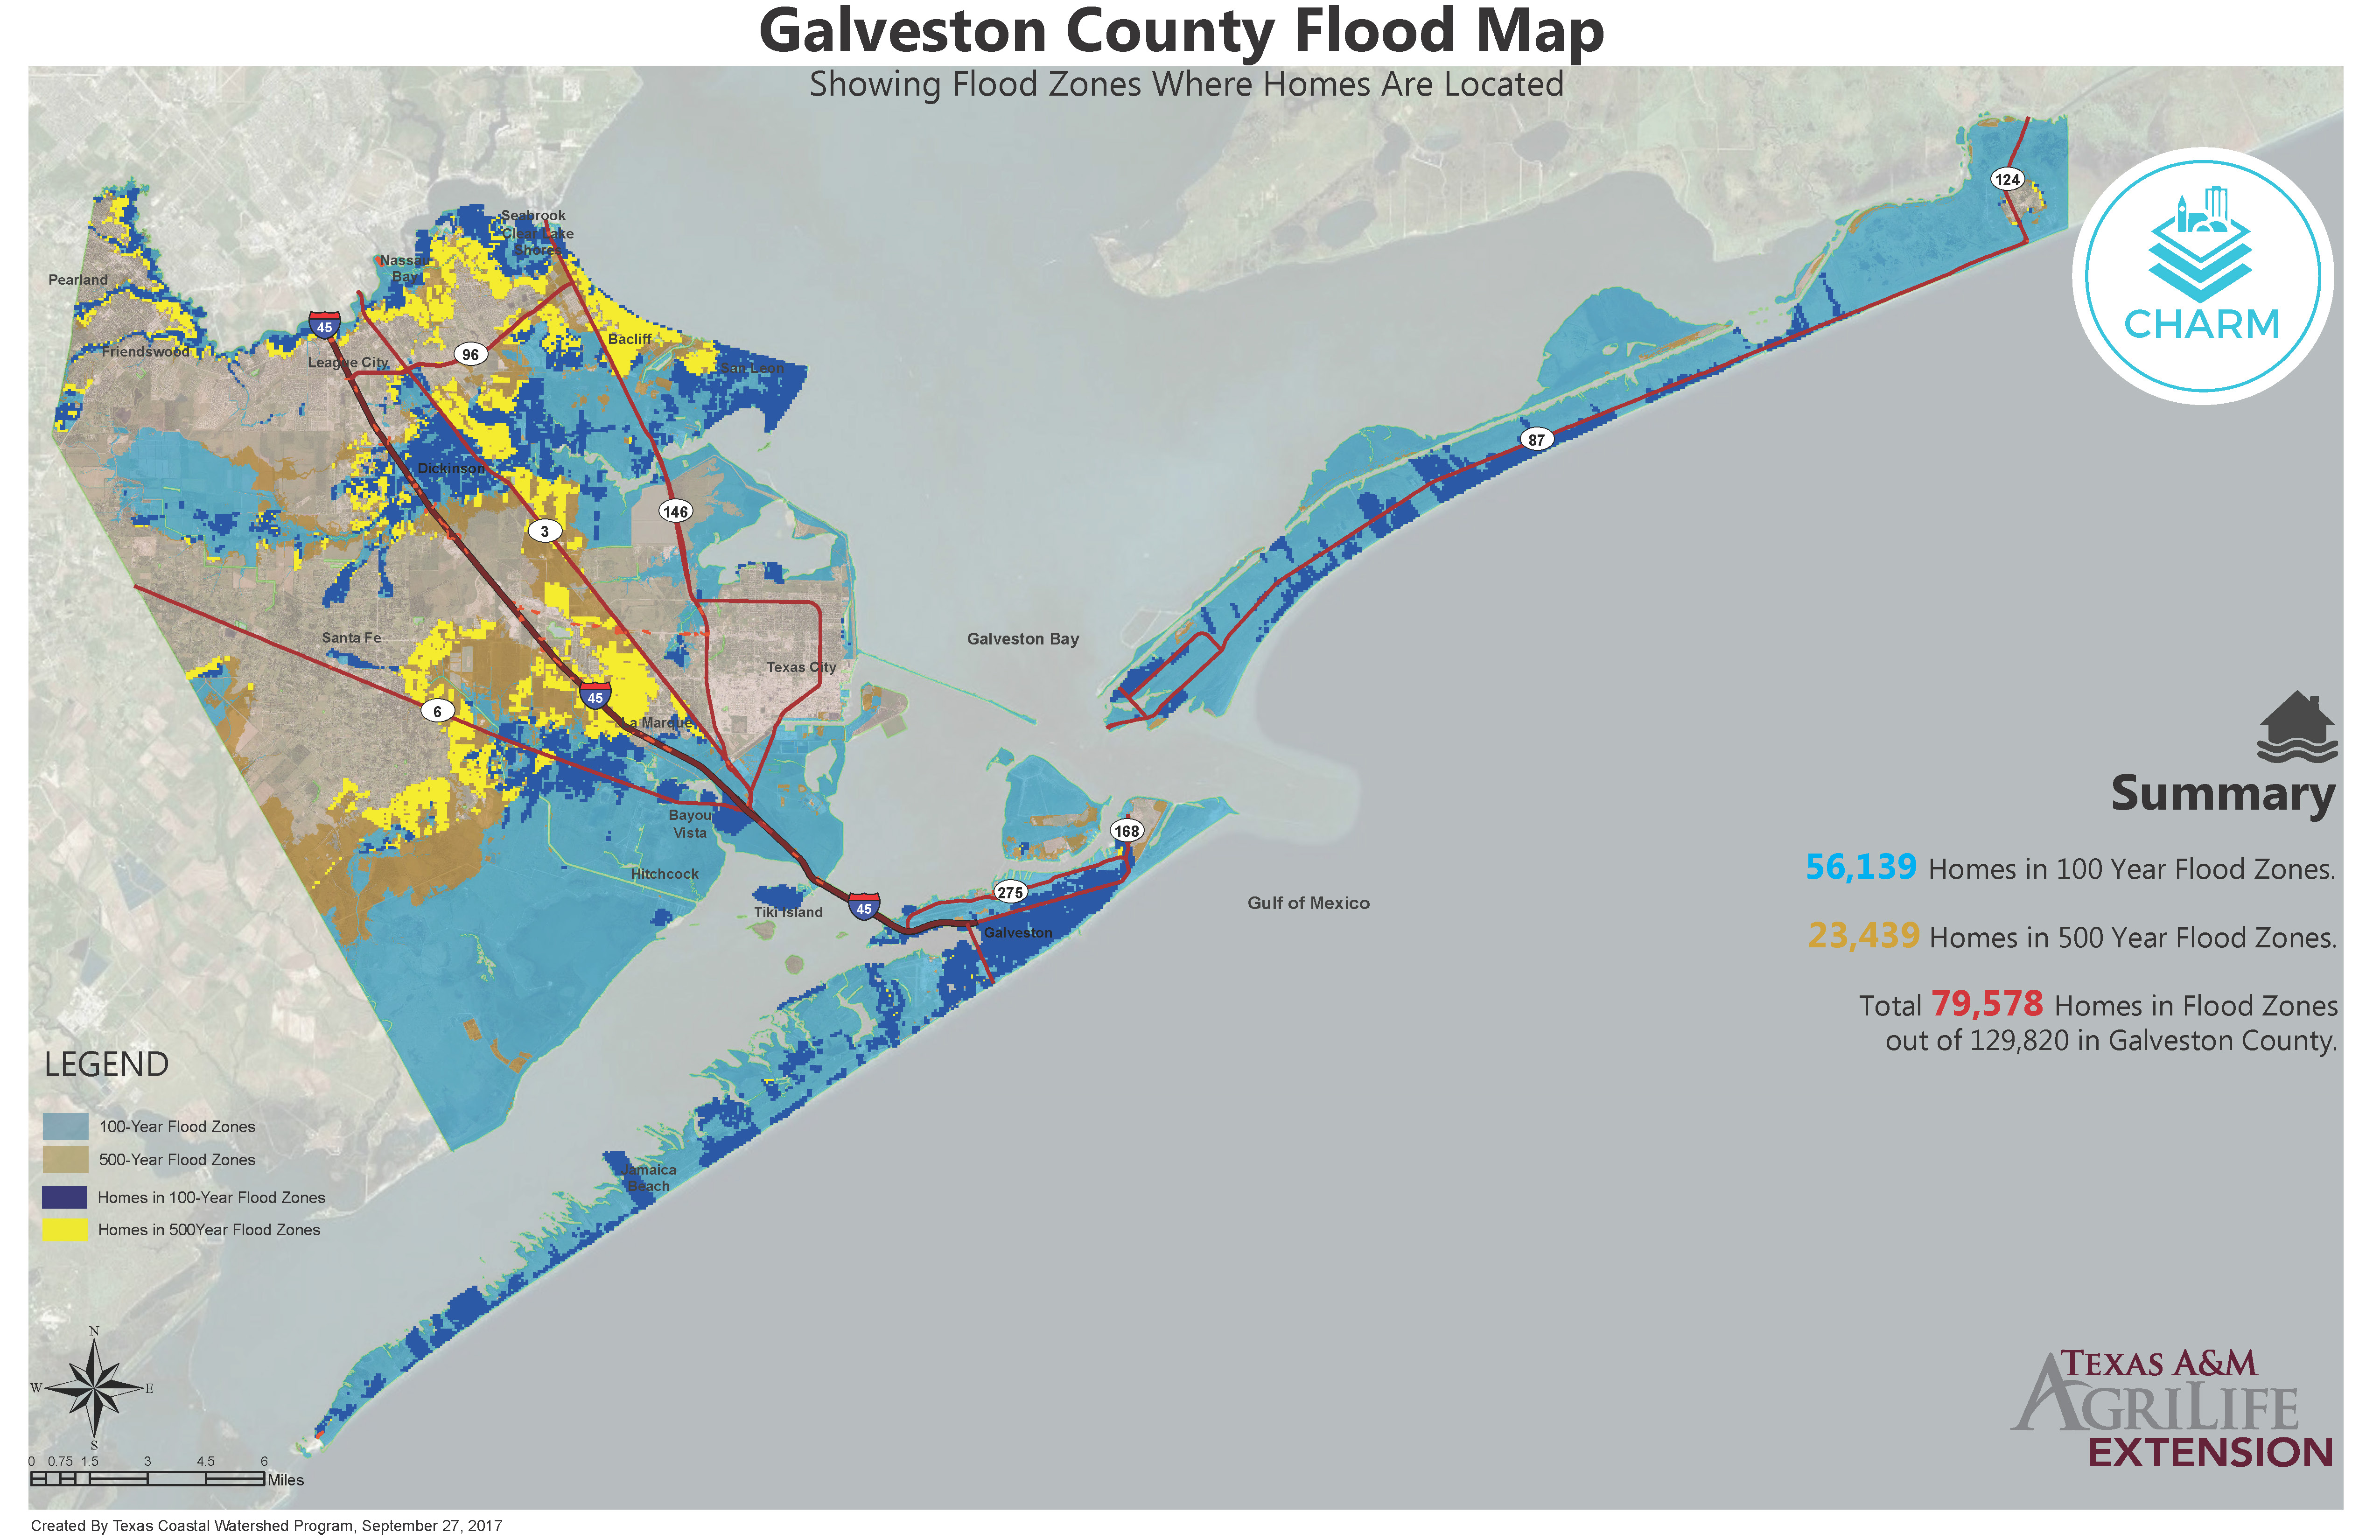 Flood Zone Maps for Coastal Counties | Texas Community ... on new york city flood zone map, baytown flood zone map, surfside beach flood zone map, galveston county floodplain maps, colorado flood zone map, galveston county texas, jersey village flood zone map, amarillo flood zone map, caddo parish flood zone map, galveston county area zip codes, pearland flood zone map, galveston flood zone chart, waco flood zone map, palm springs flood zone map, orange county floodplain map, fresno flood zone map, shreveport flood zone map, texas flood zone map, fort worth flood zone map, port arthur flood zone map,